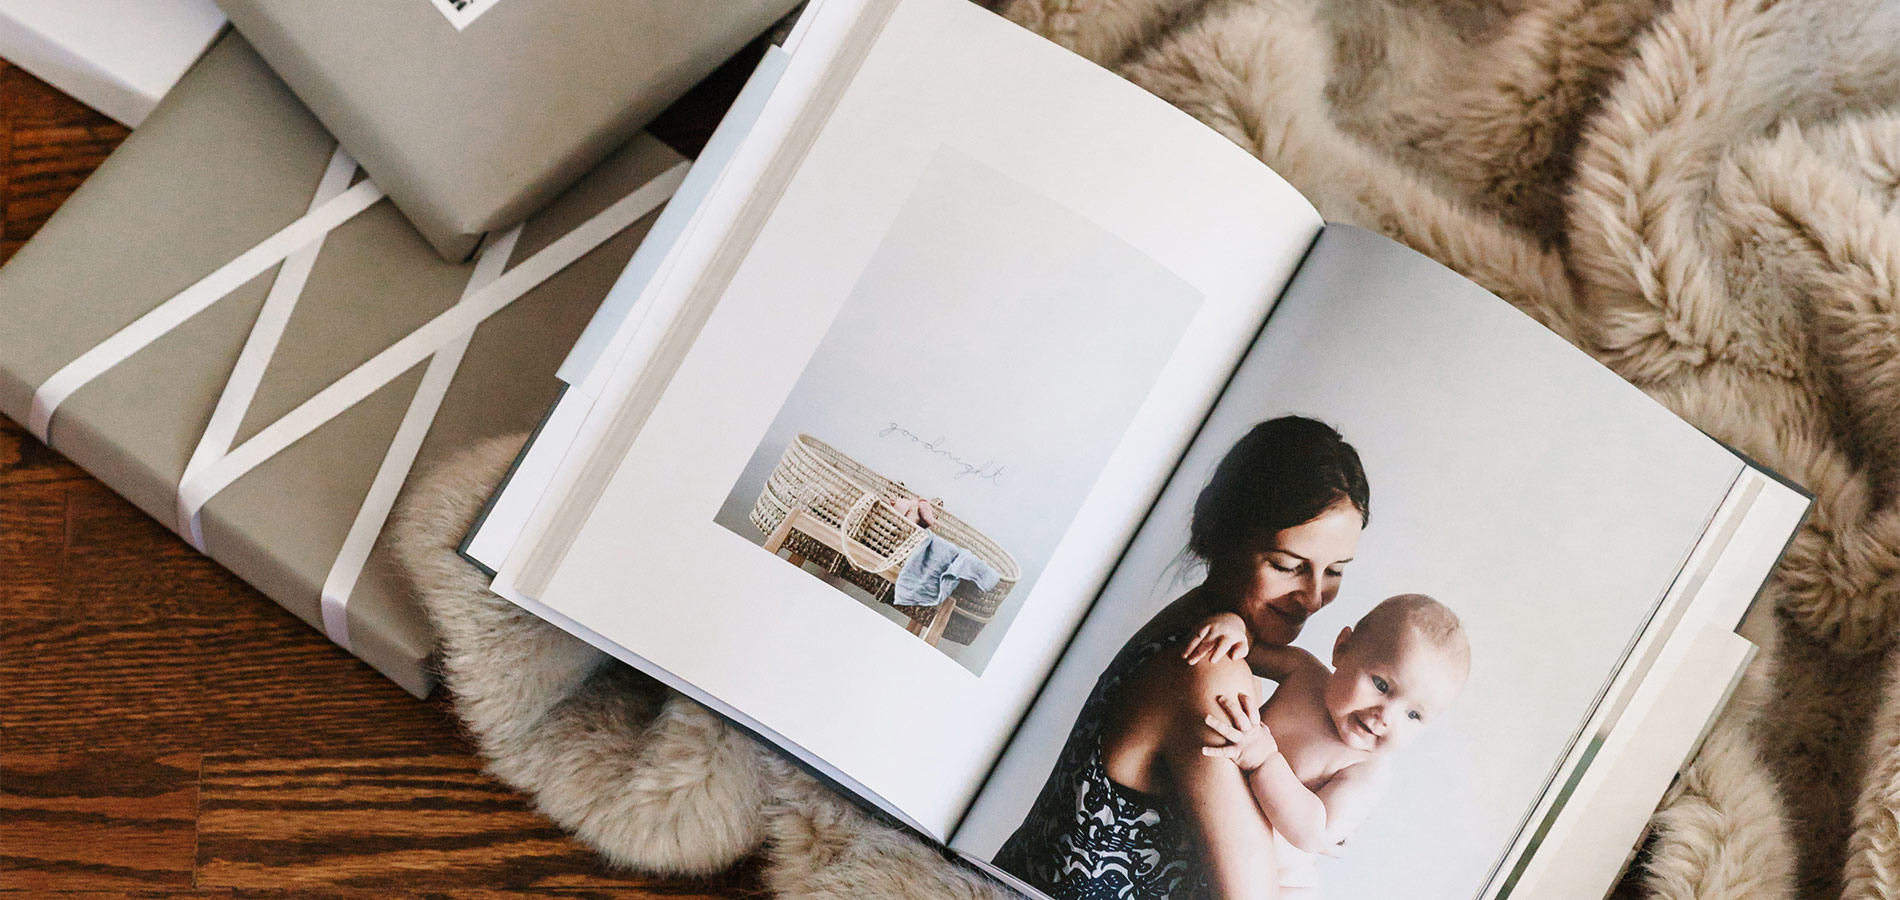 gift boxes next to photo book featuring full page image of mother and baby